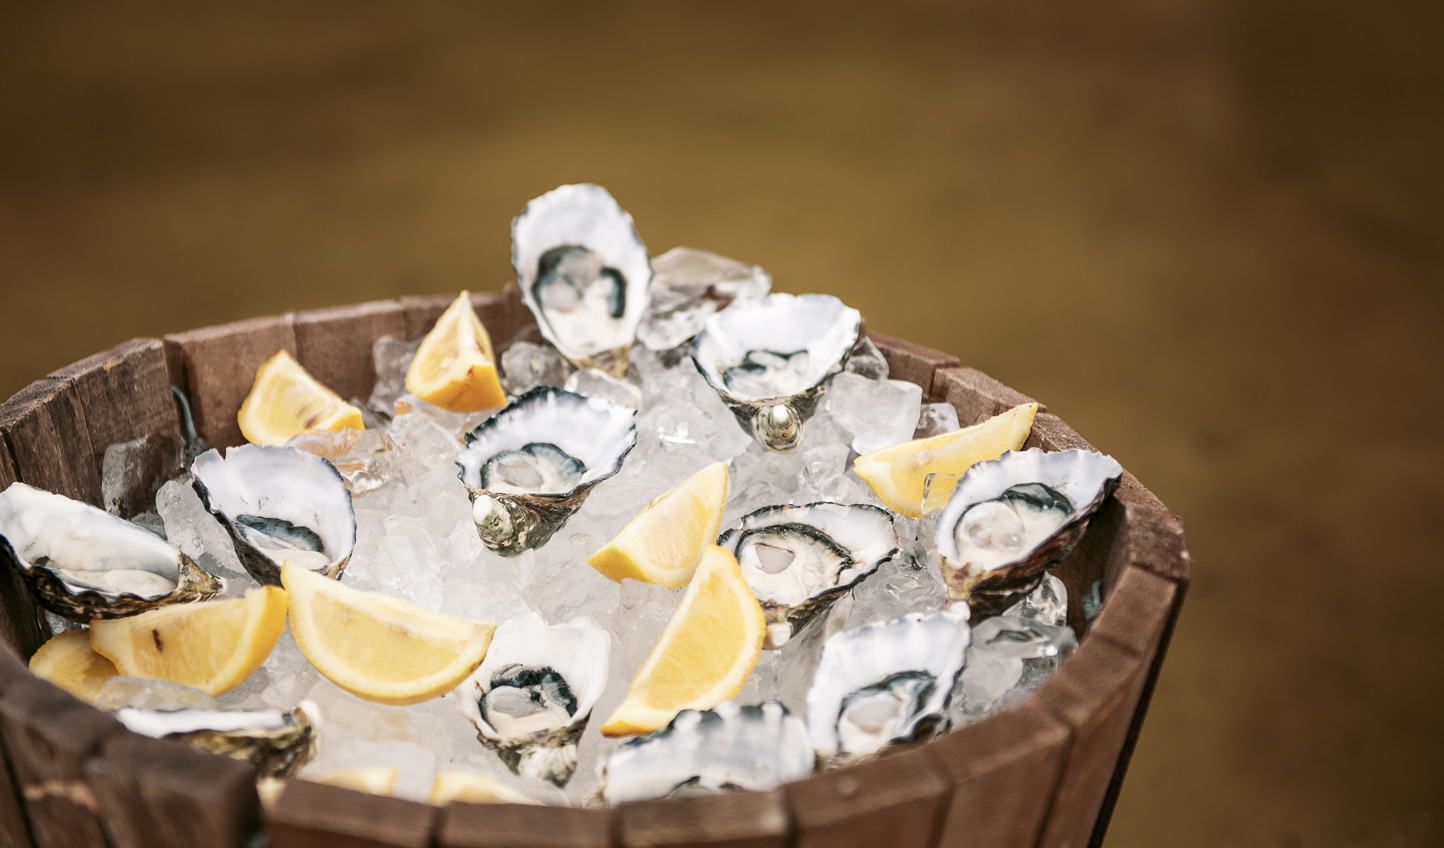 Pair oysters with a crisp sparkling wine for the ideal sundowner